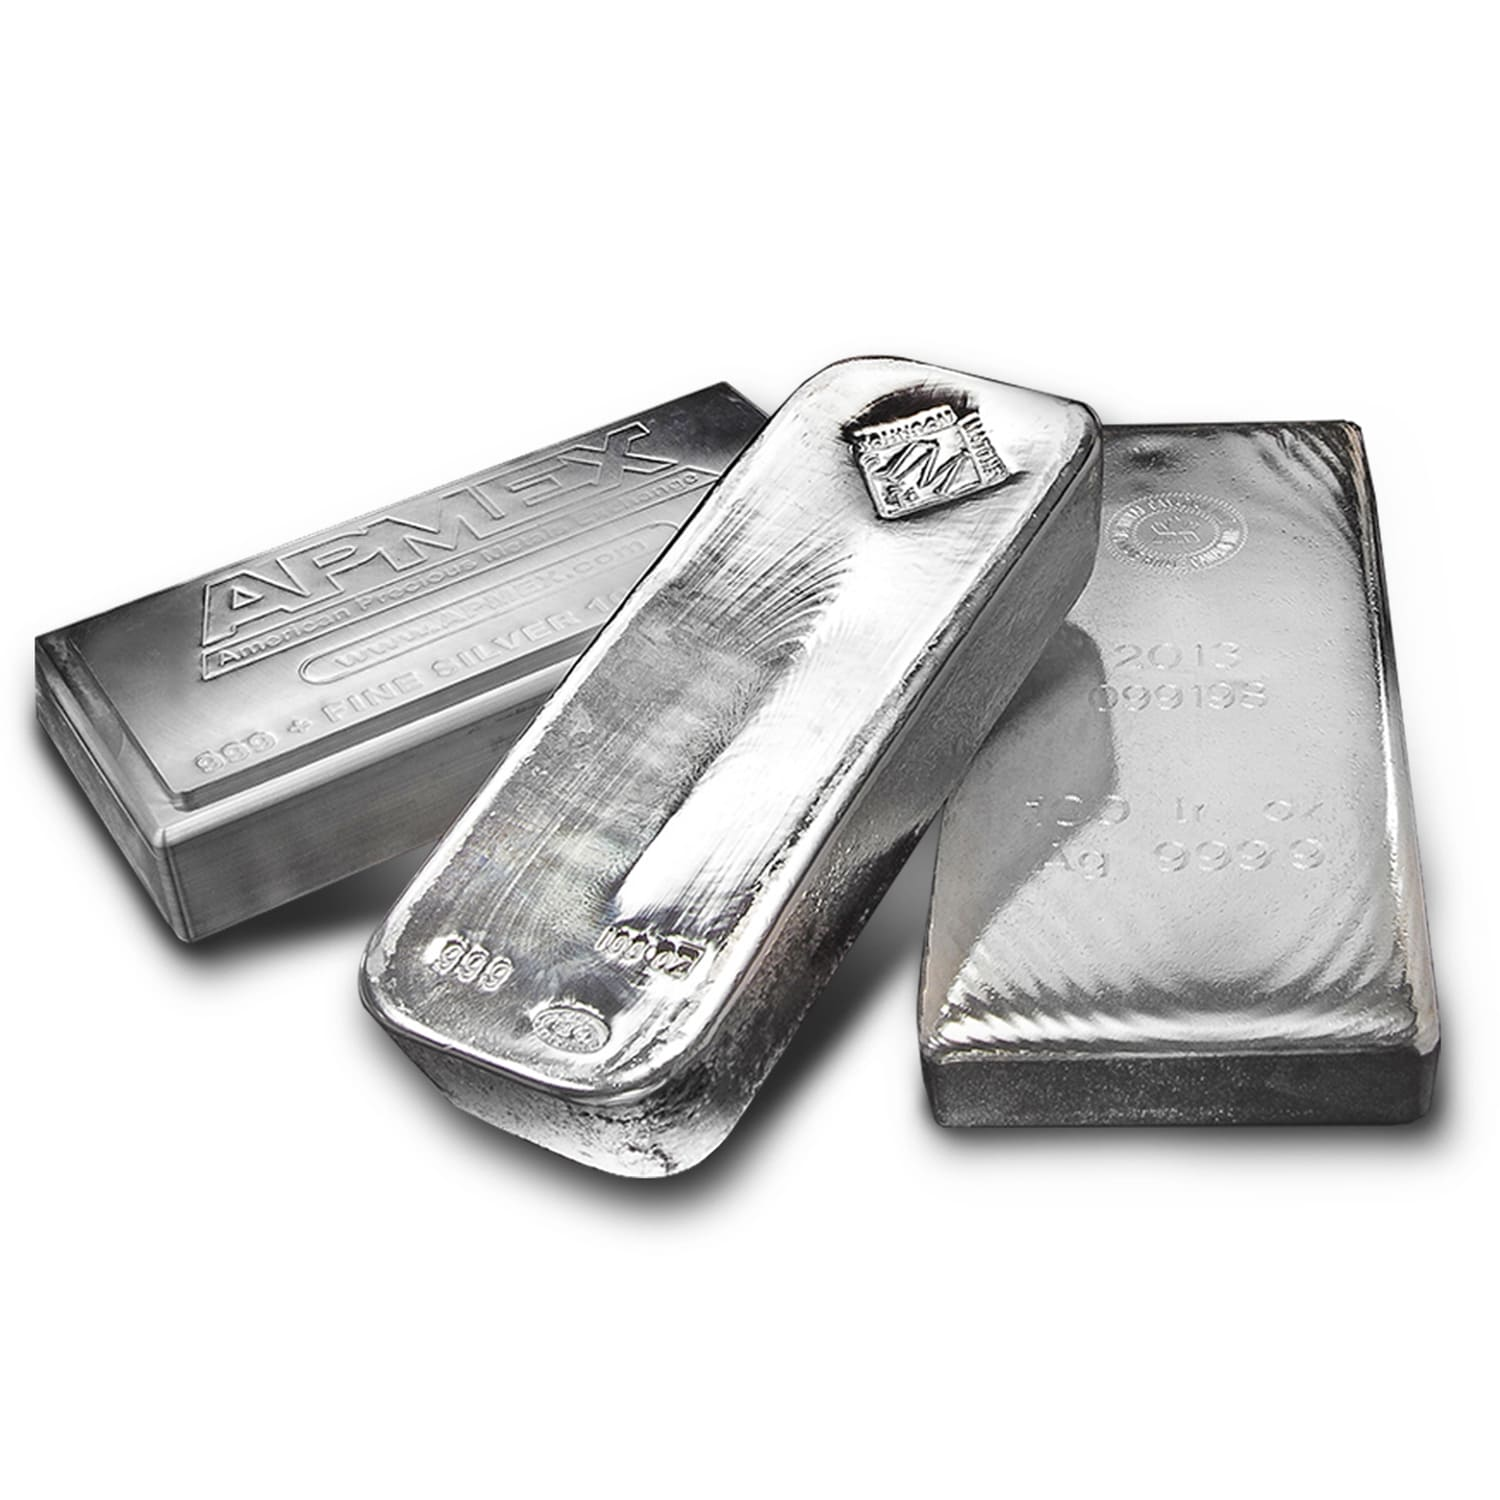 100 oz Silver Bars - Secondary Market